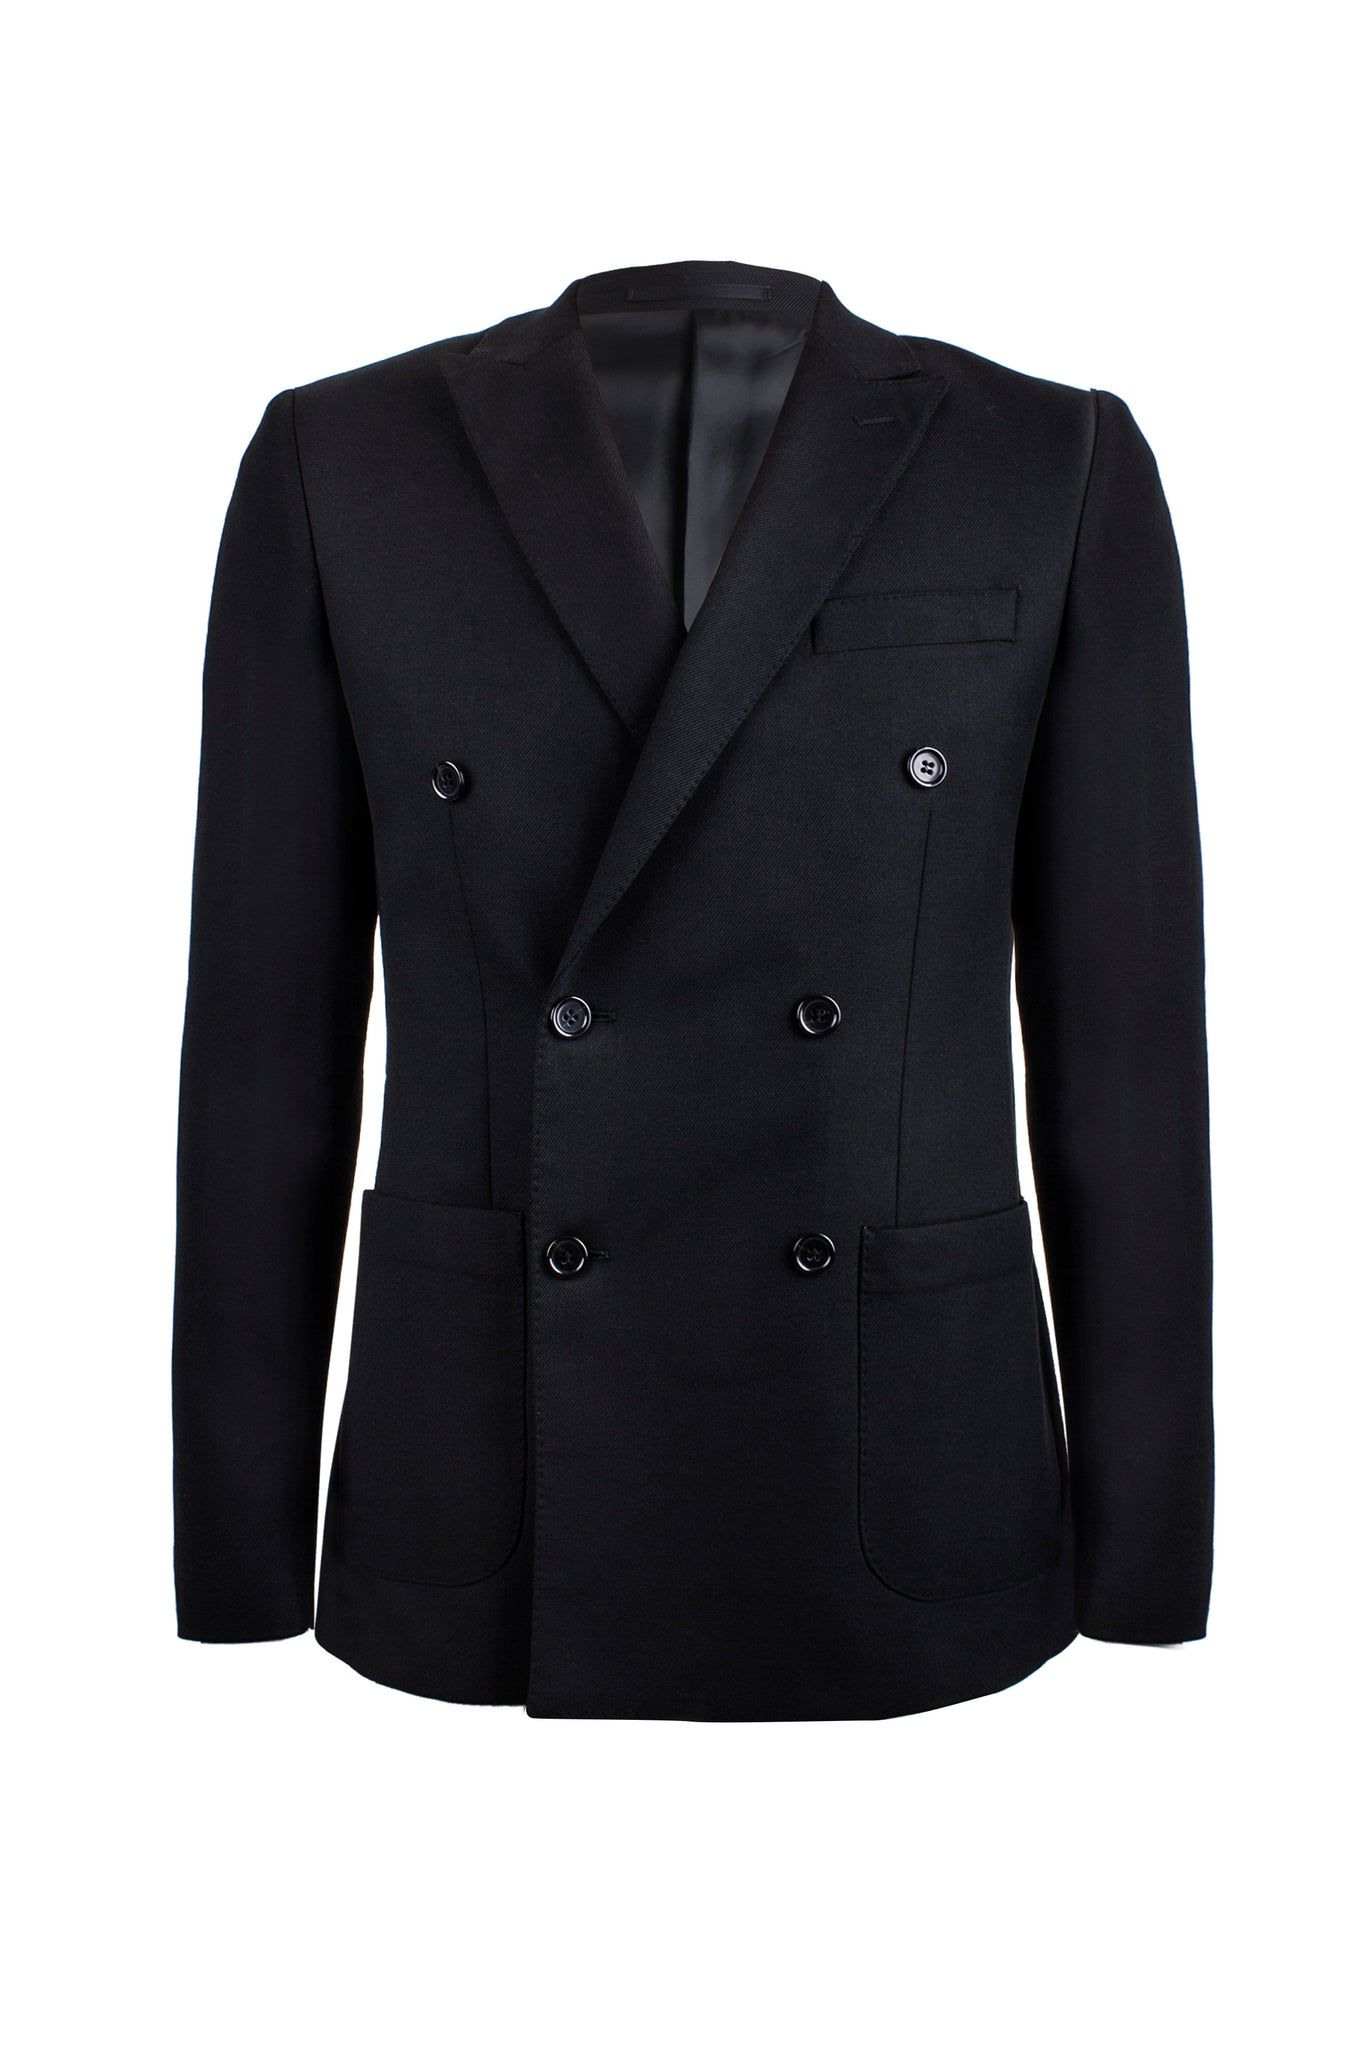 "BLAZER ""NICK"" 